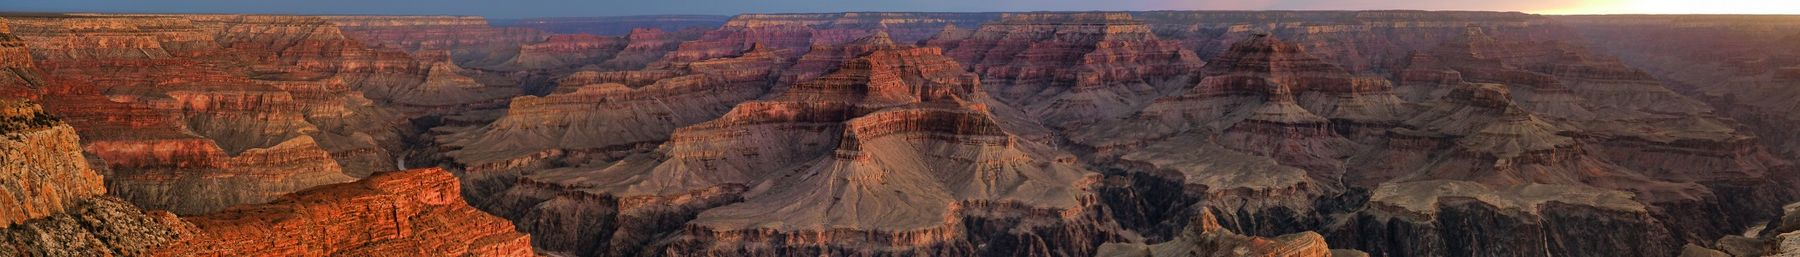 Grand canyon wikivoyage banner.jpg